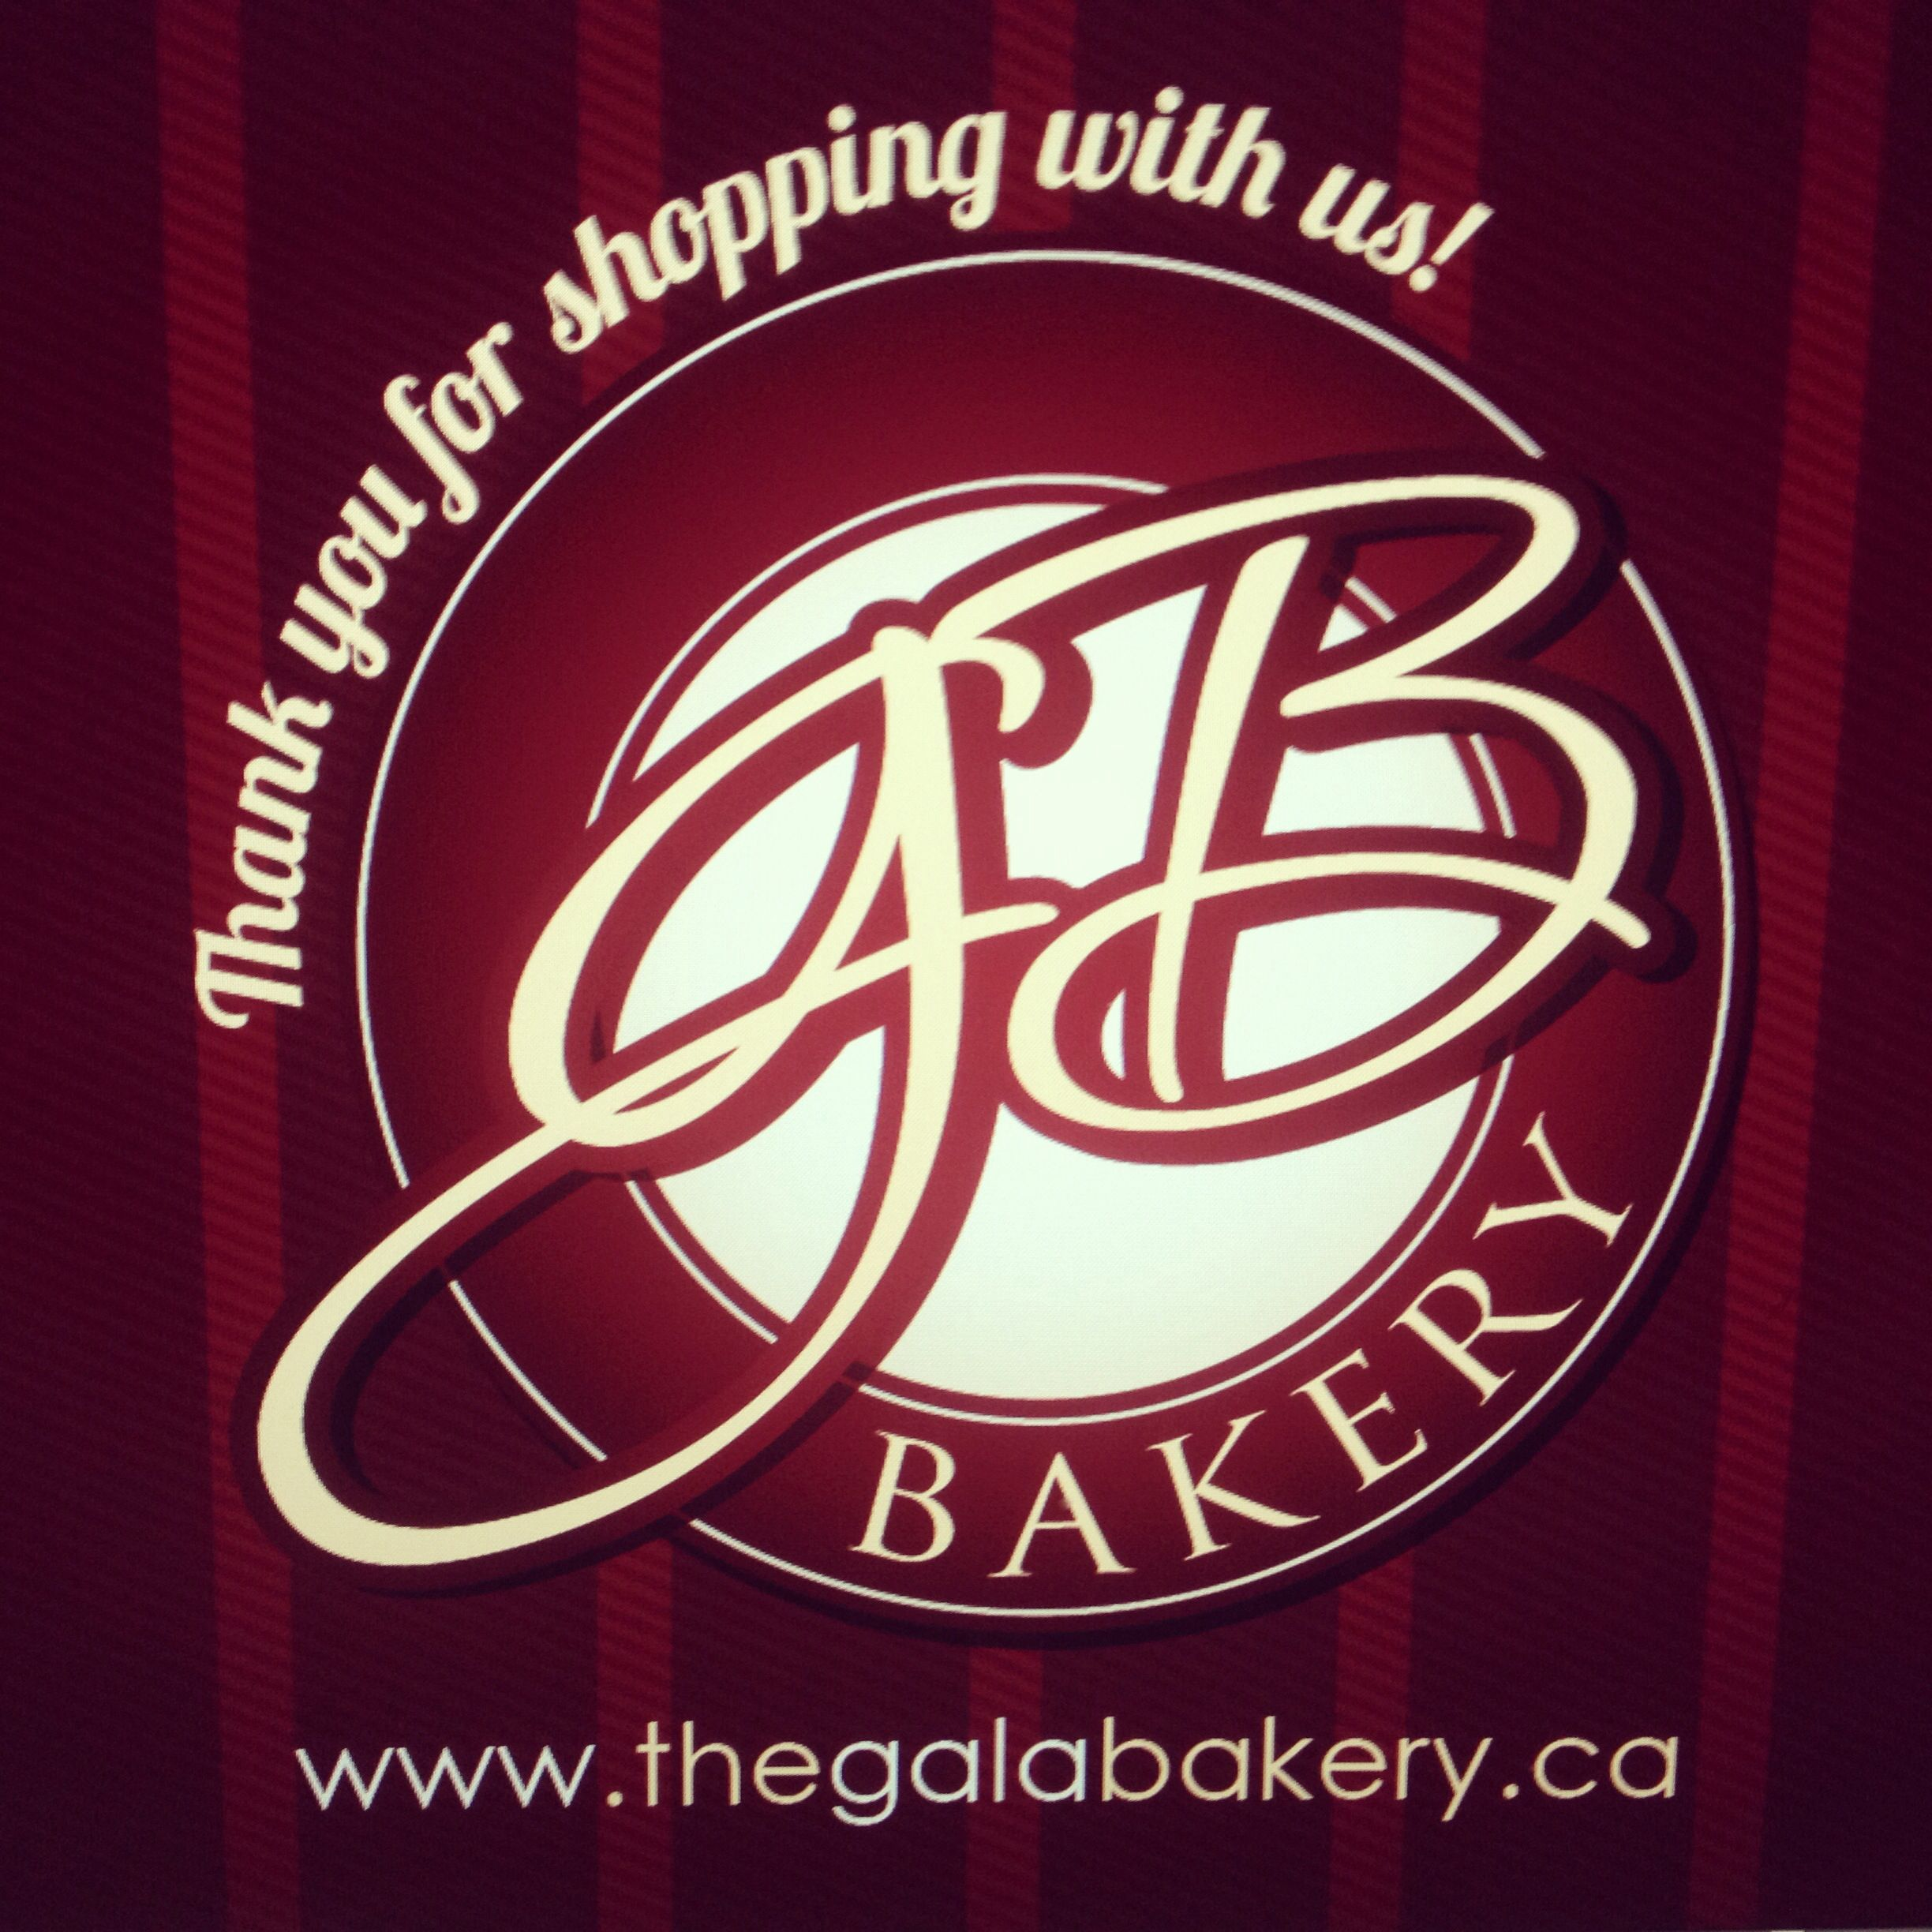 Logo redesign (With images) Bakery logo design, Bakery